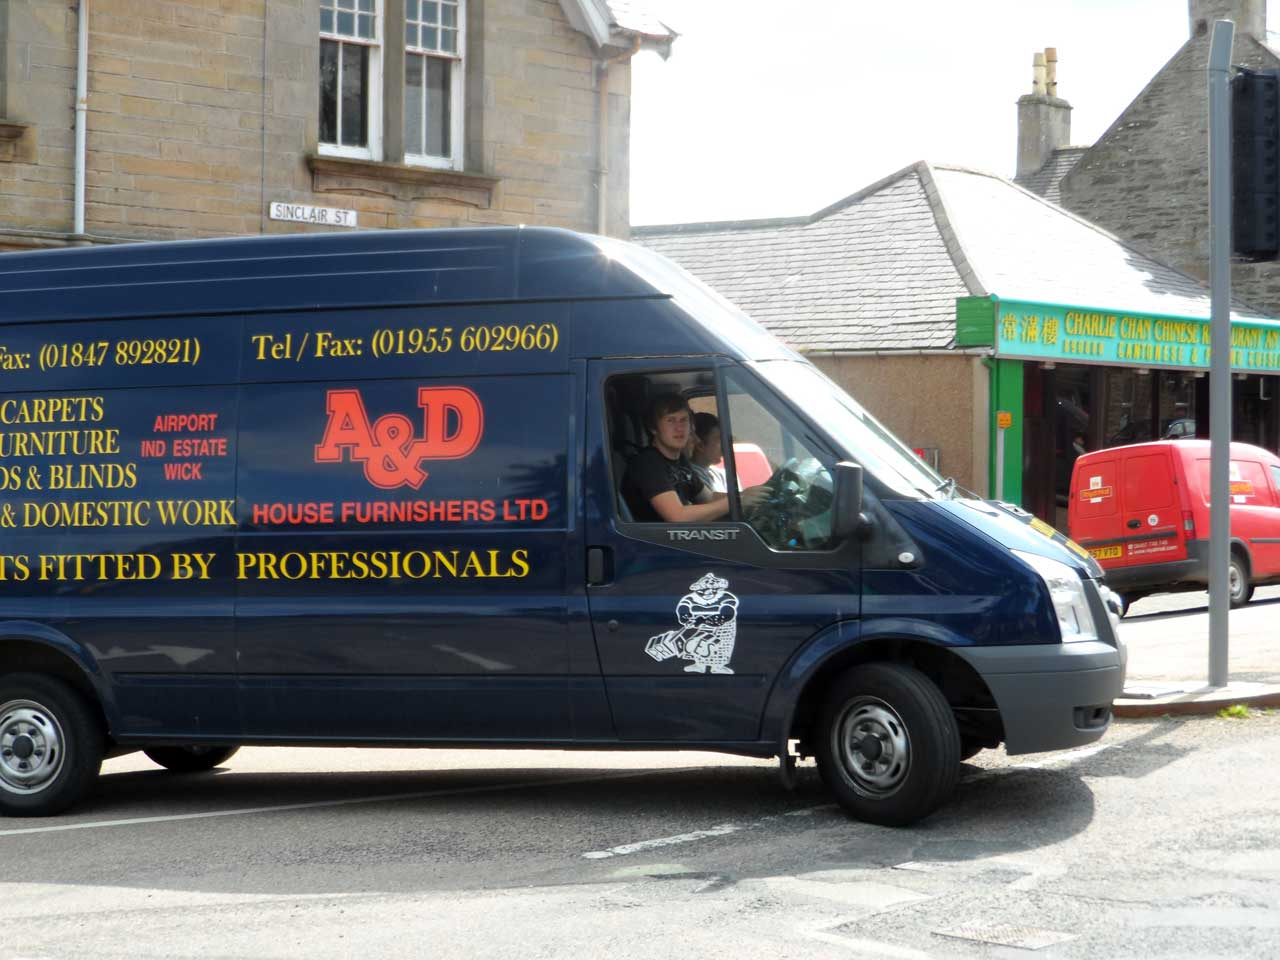 Photo: A & D Furnishers